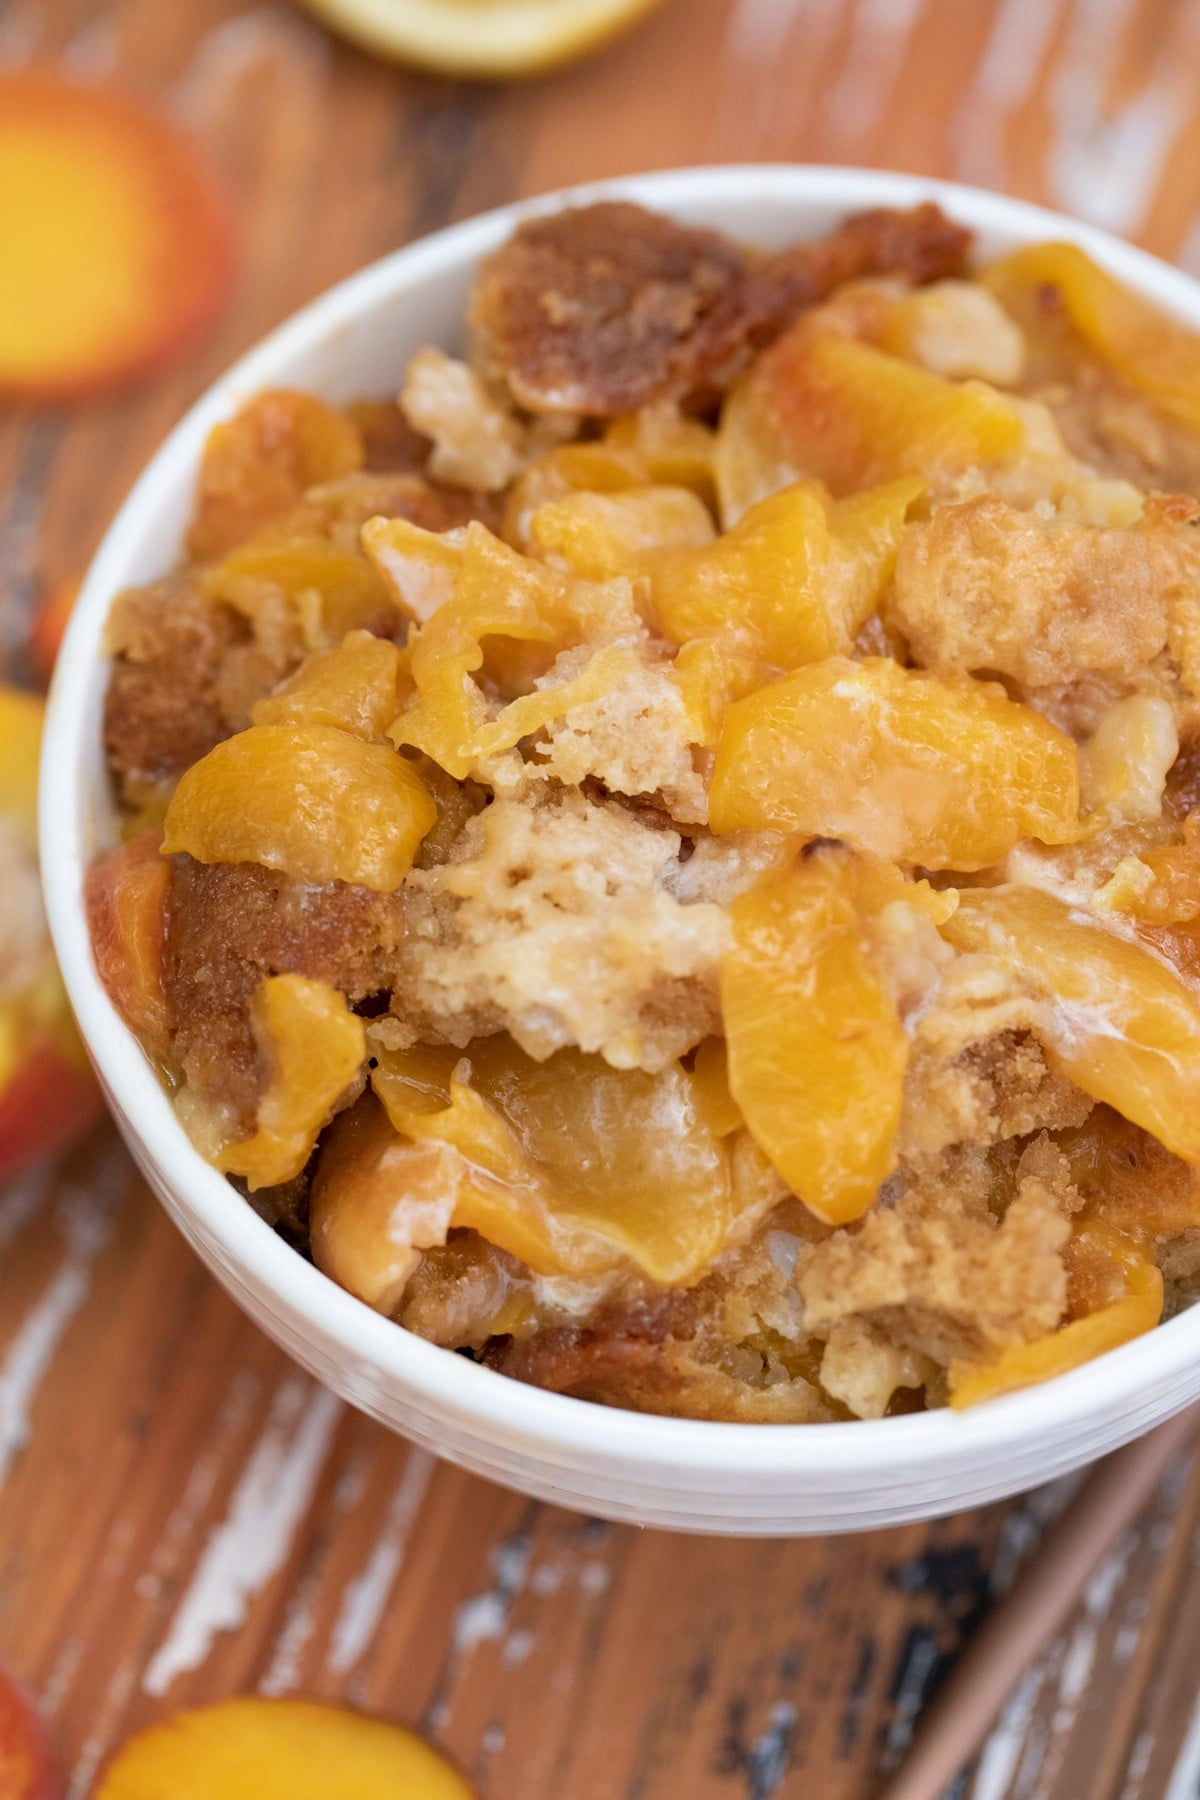 White bowl of cobbler with sliced peaches